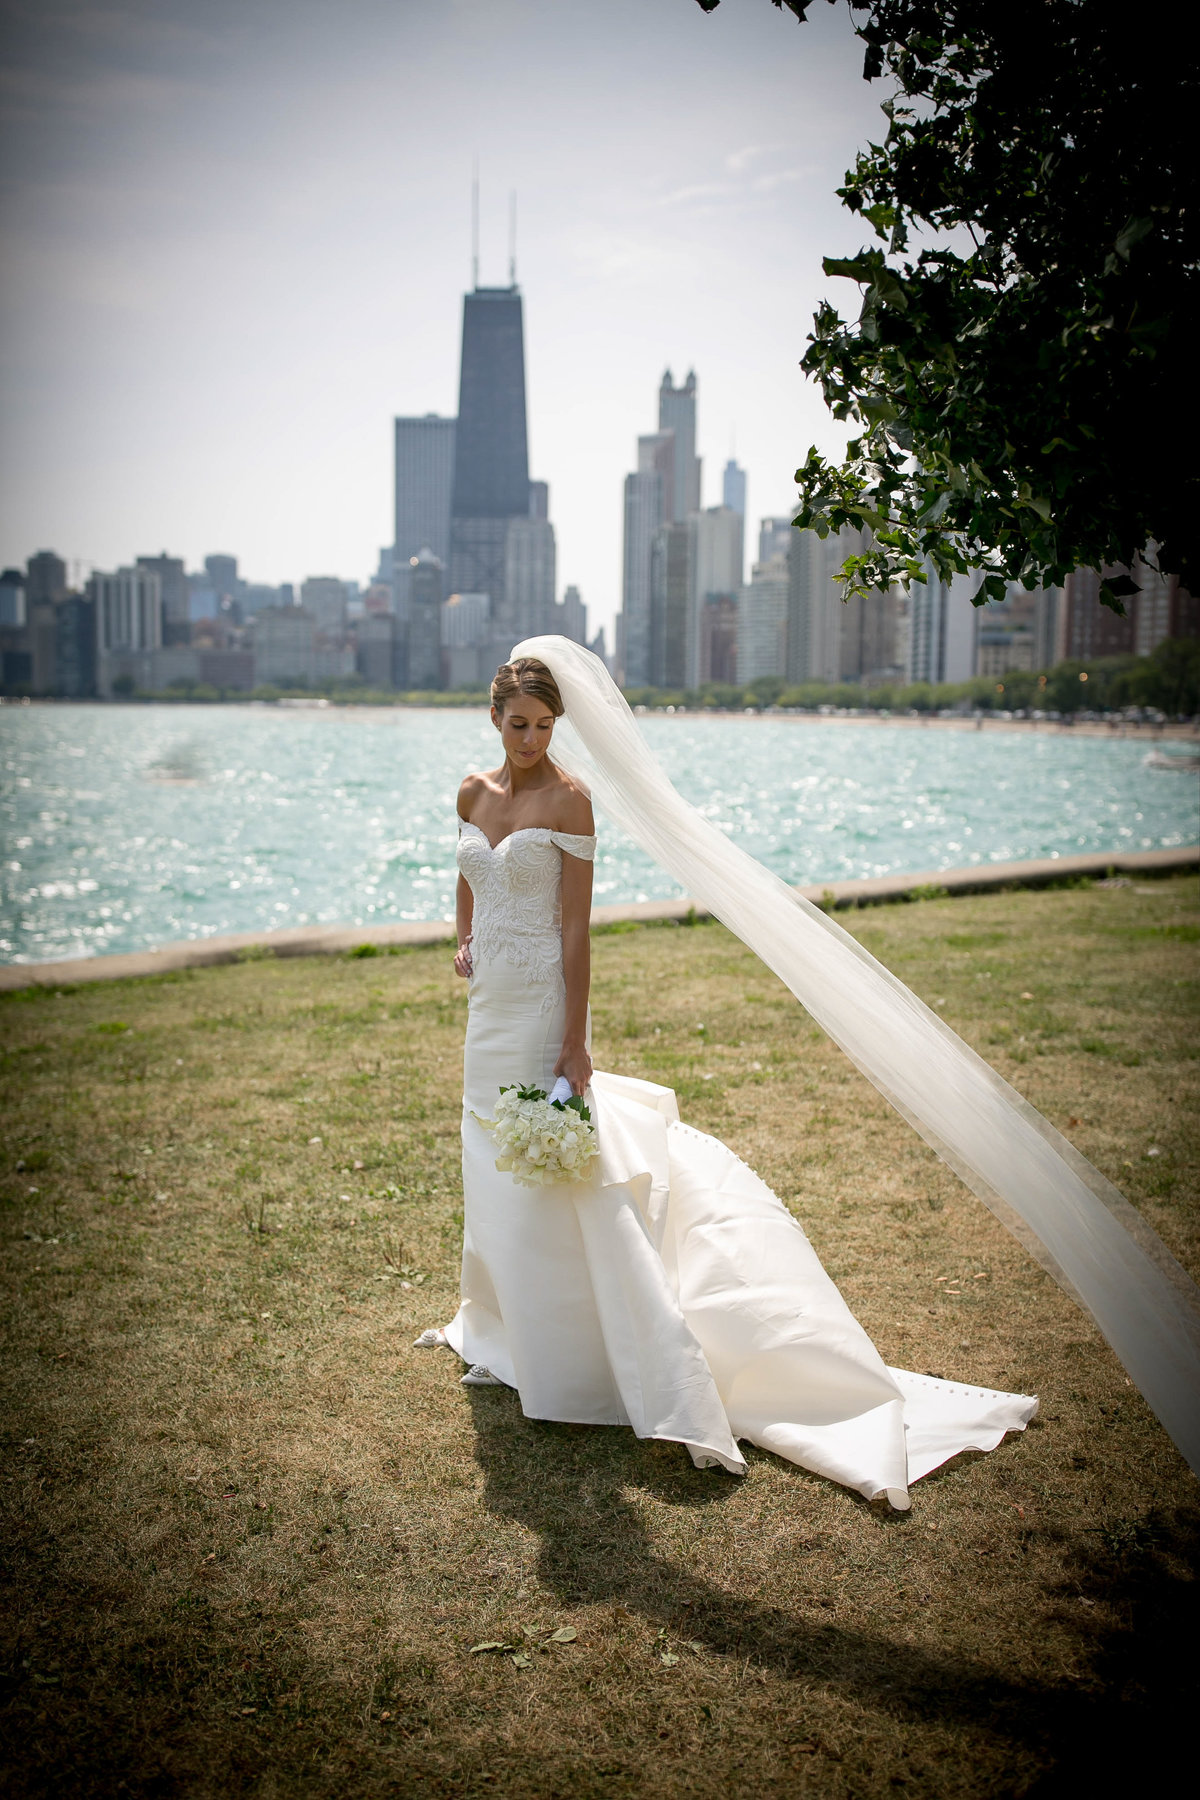 chicago wedding photographers, illinois photography, photographers, top (68 of 70)